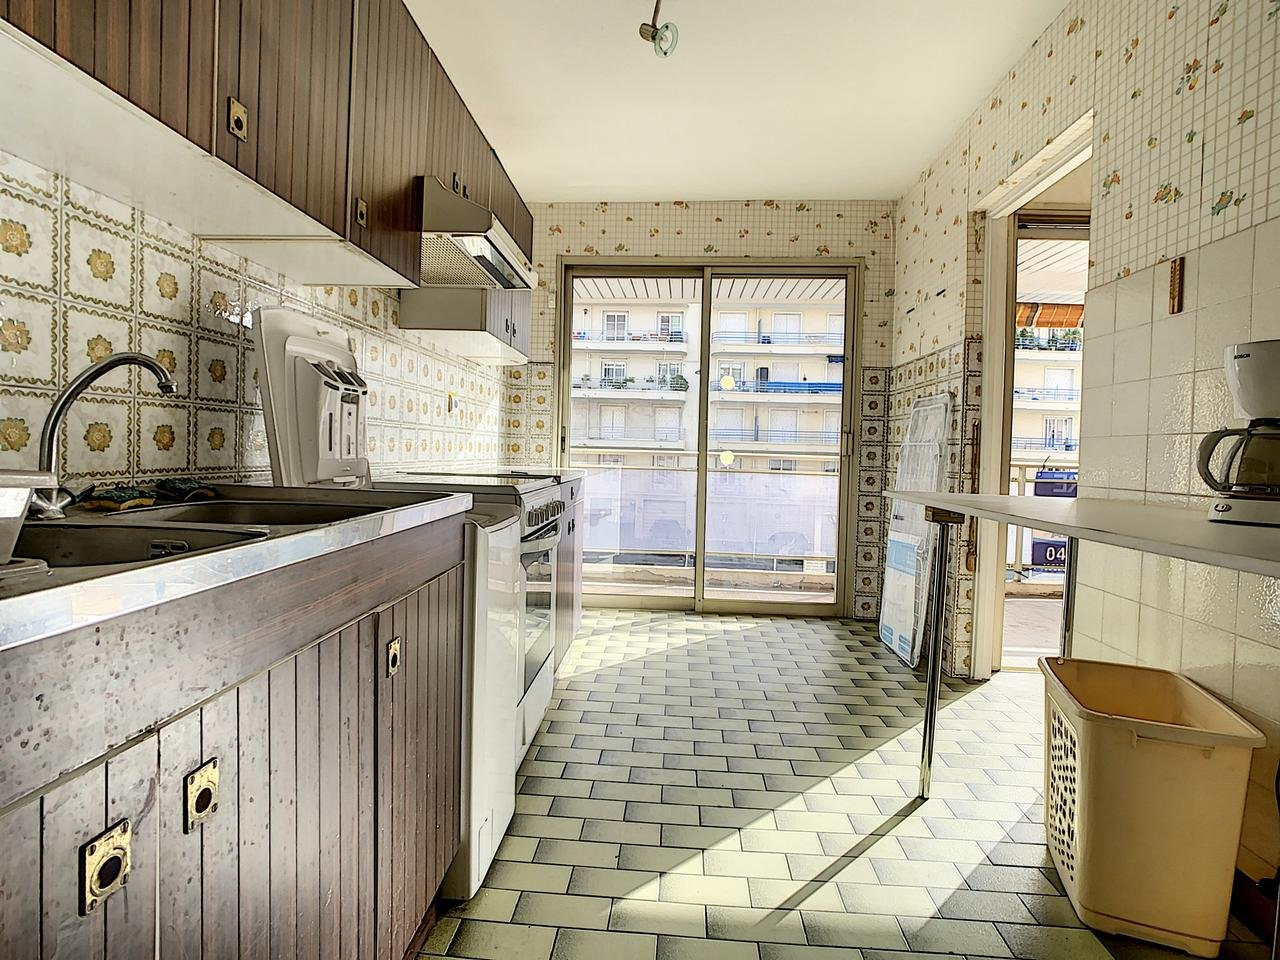 Appartement  2 Rooms 59m2  for sale   195000 €